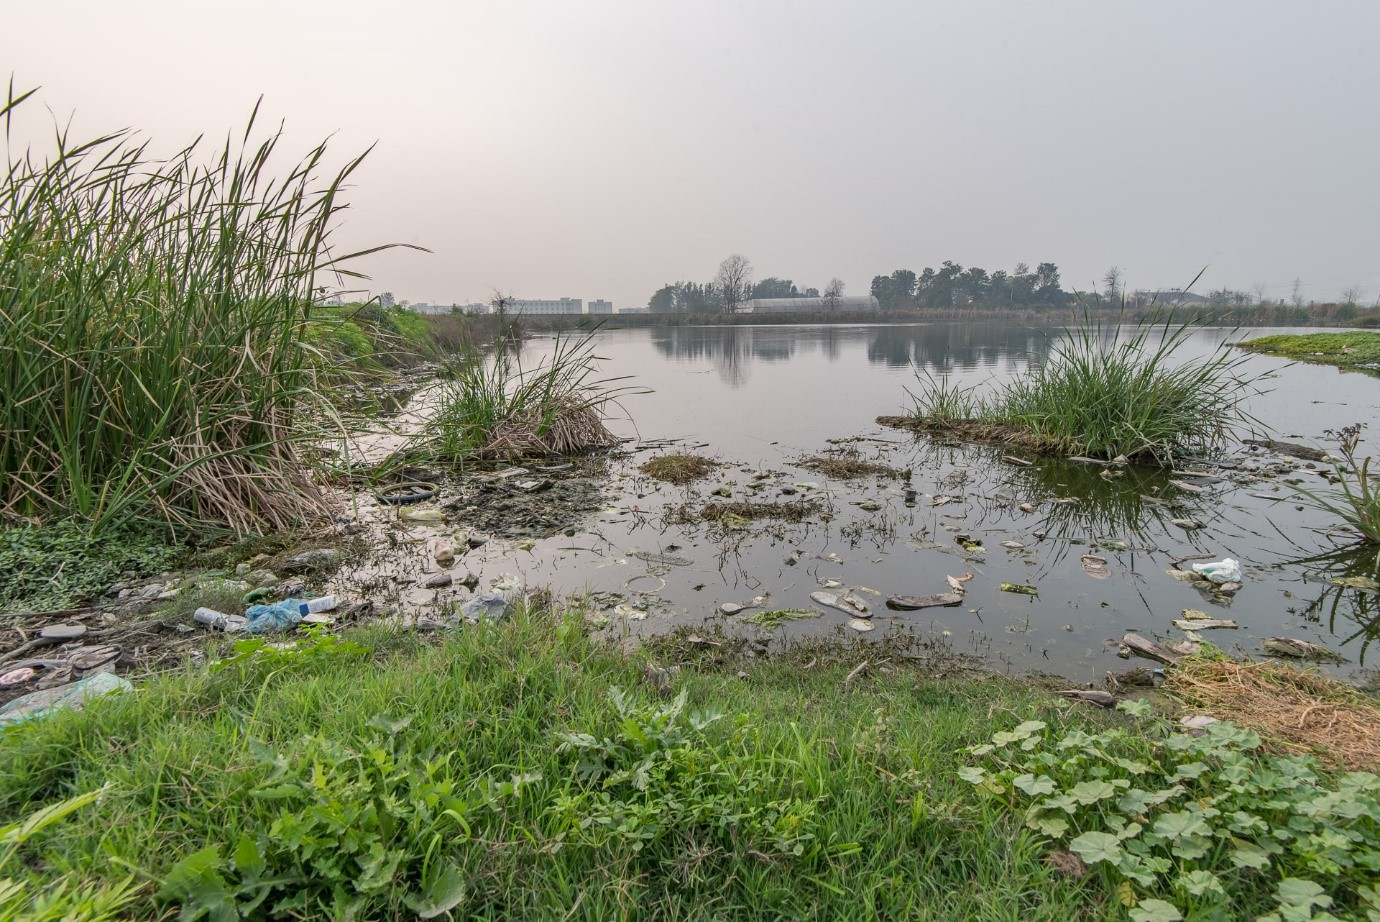 Contaminated pond at village Malakpur in Punjab (Photo by: Paramvir Singh Bhogal)